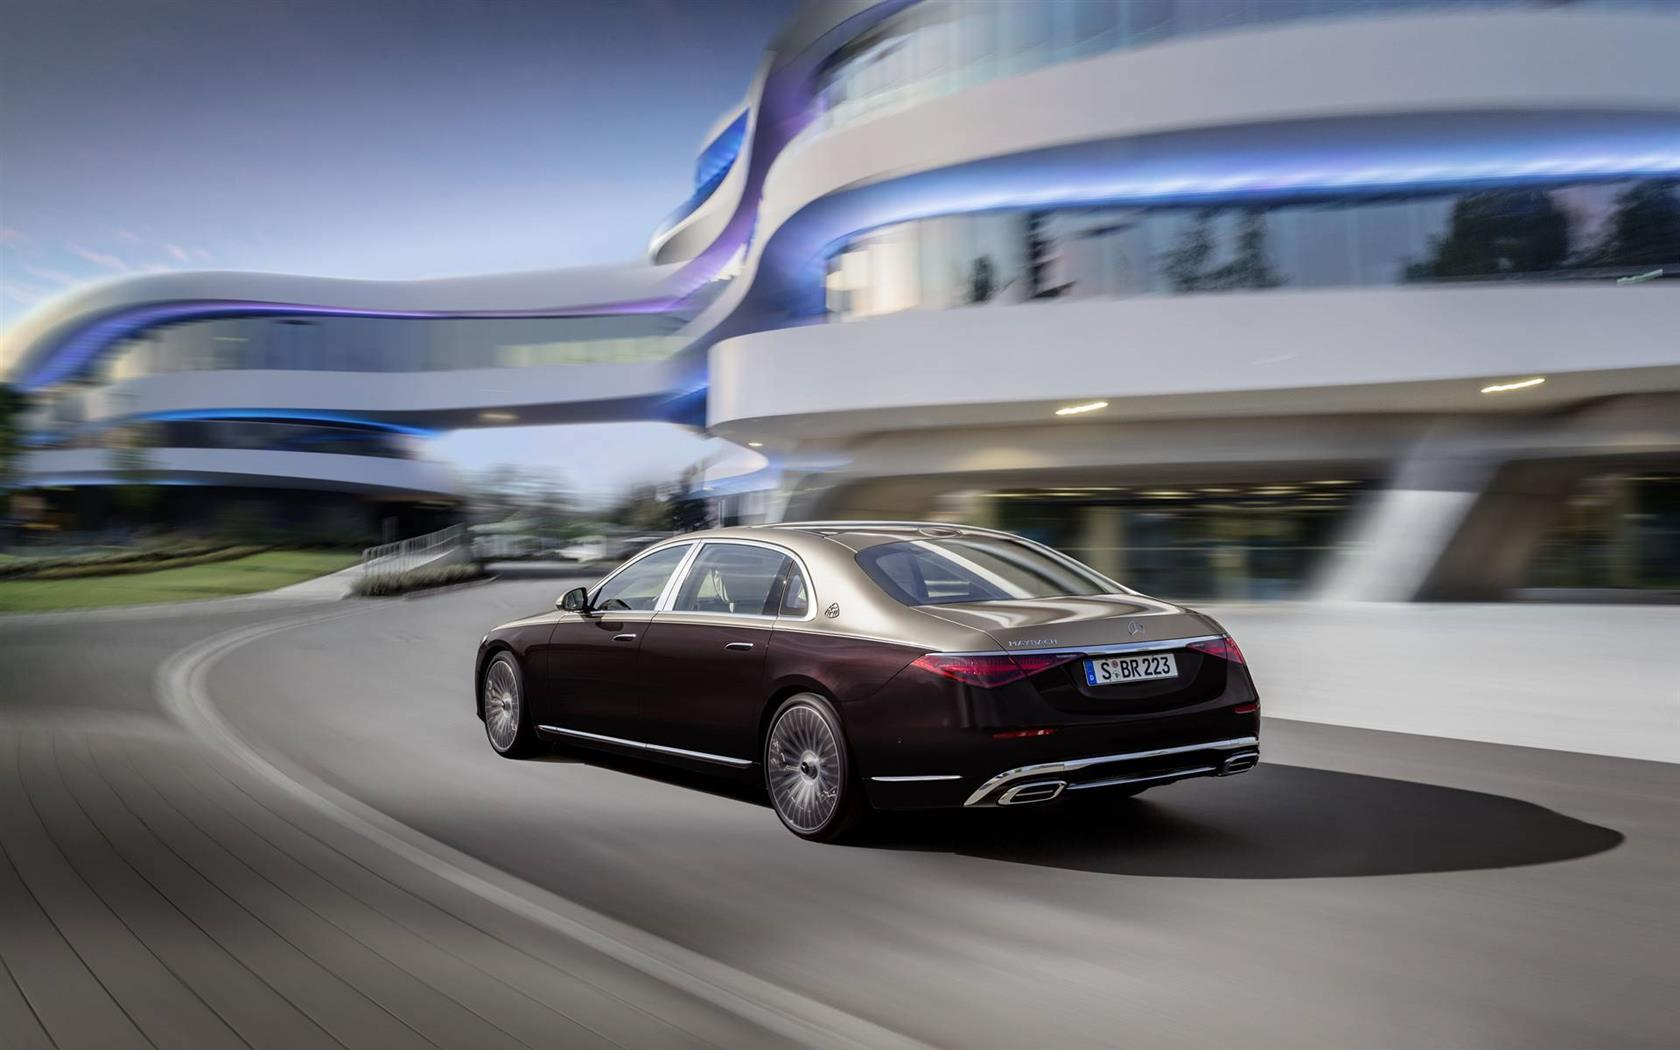 2021 Mercedes-Benz Maybach S-Class